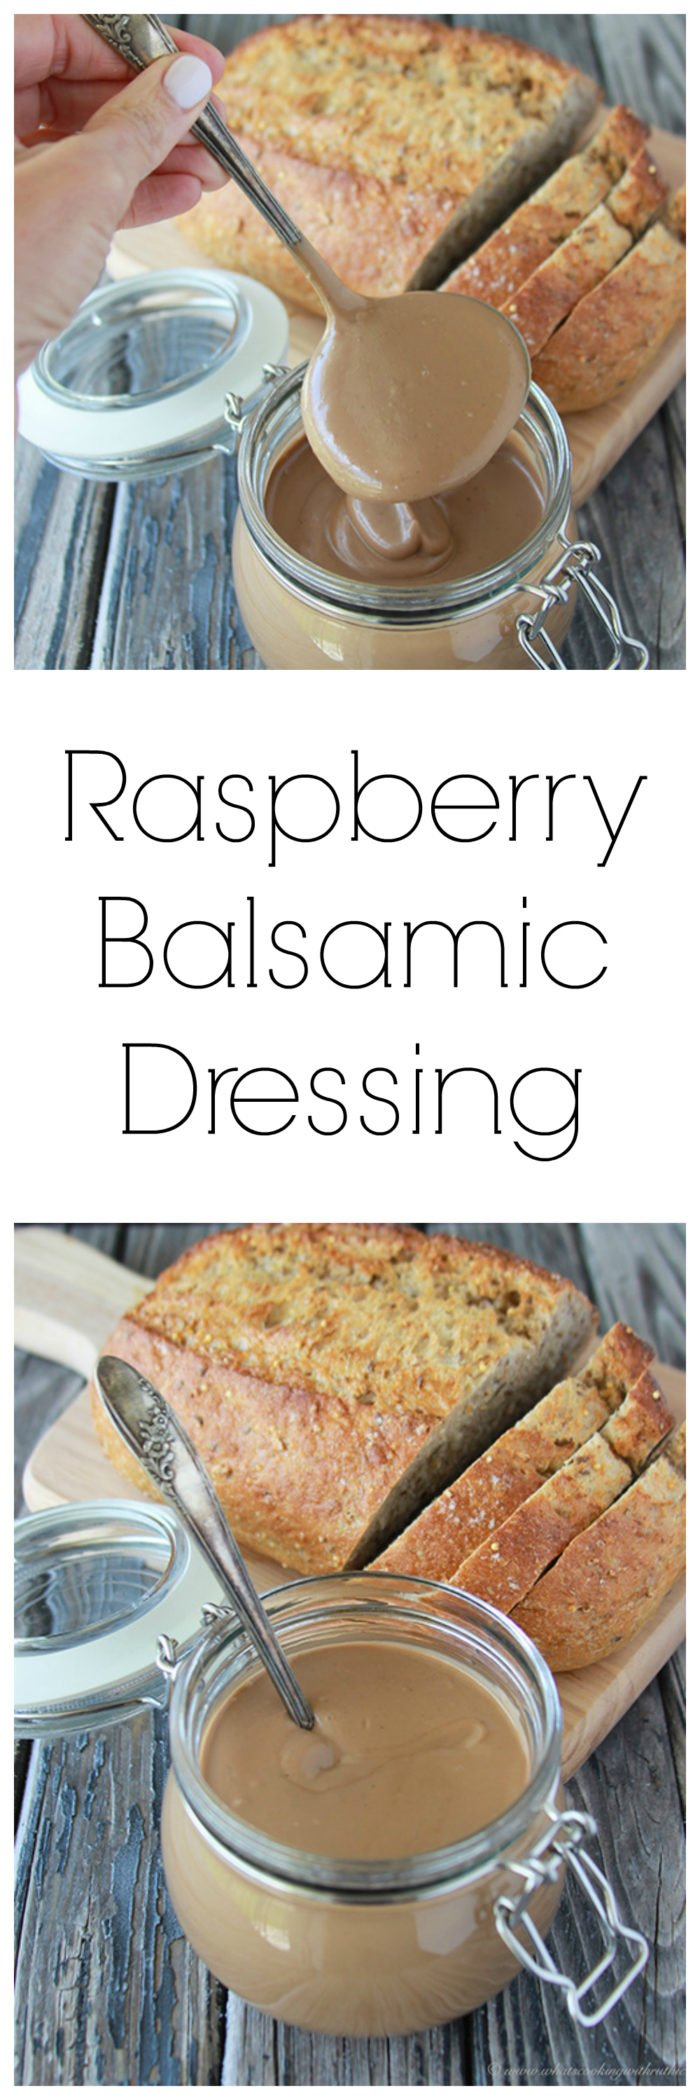 Raspberry Balsamic Vinaigrette is my most favorite salad dressing ever! www.cookingwithruthie.com